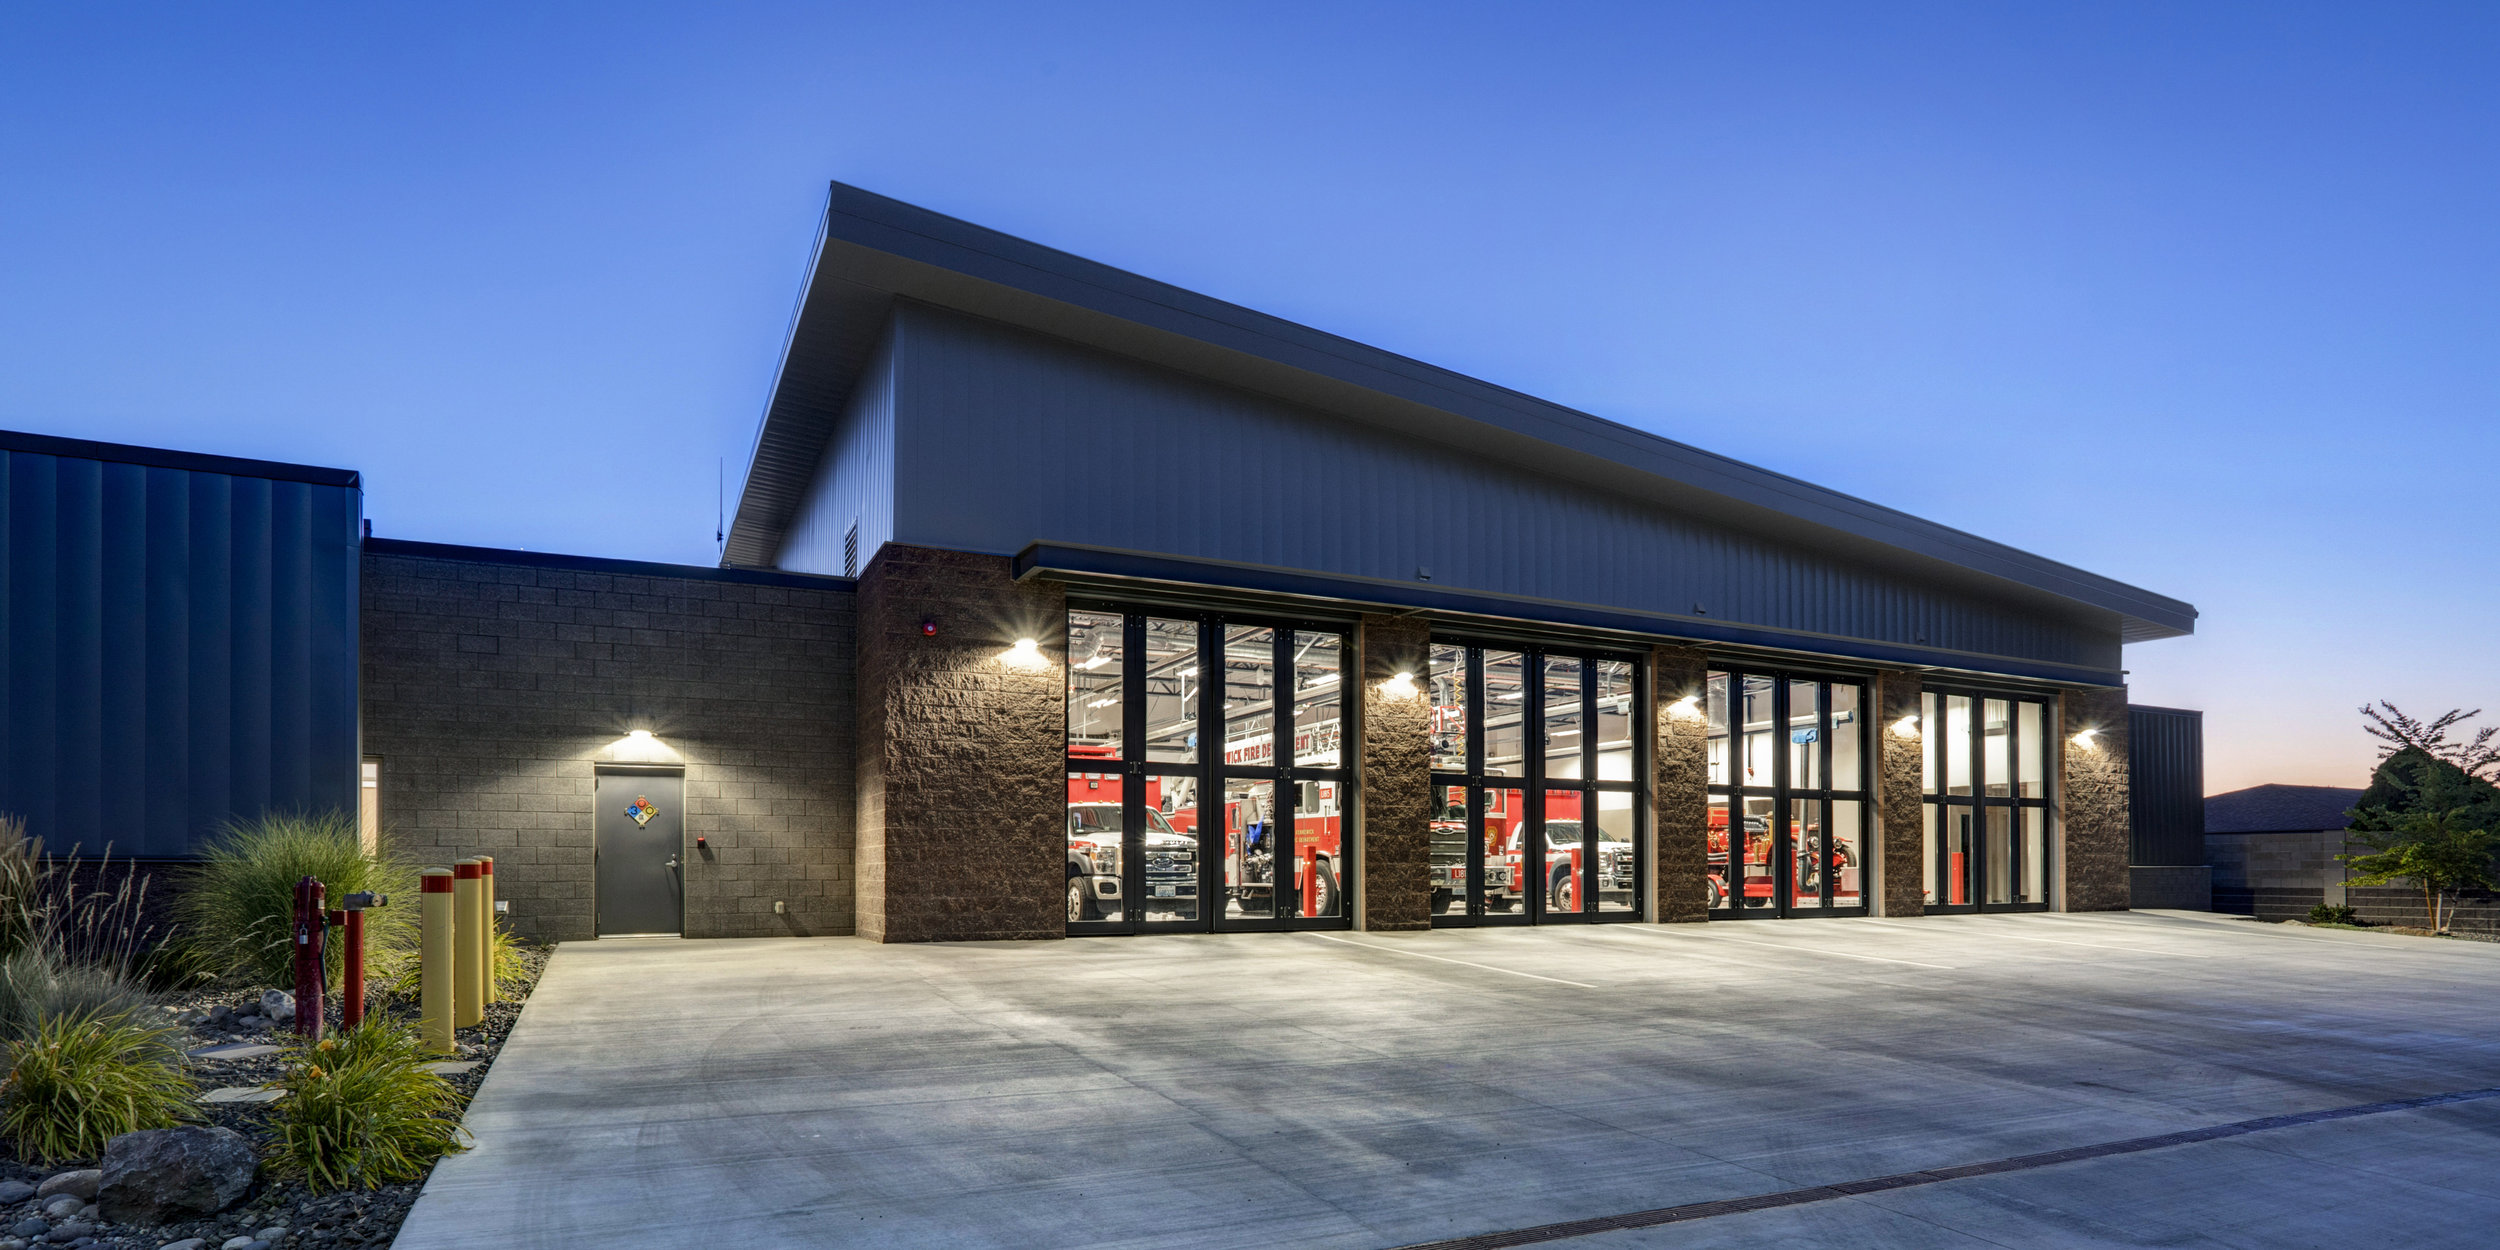 Fire-Station-Design-Architecture-6.jpg